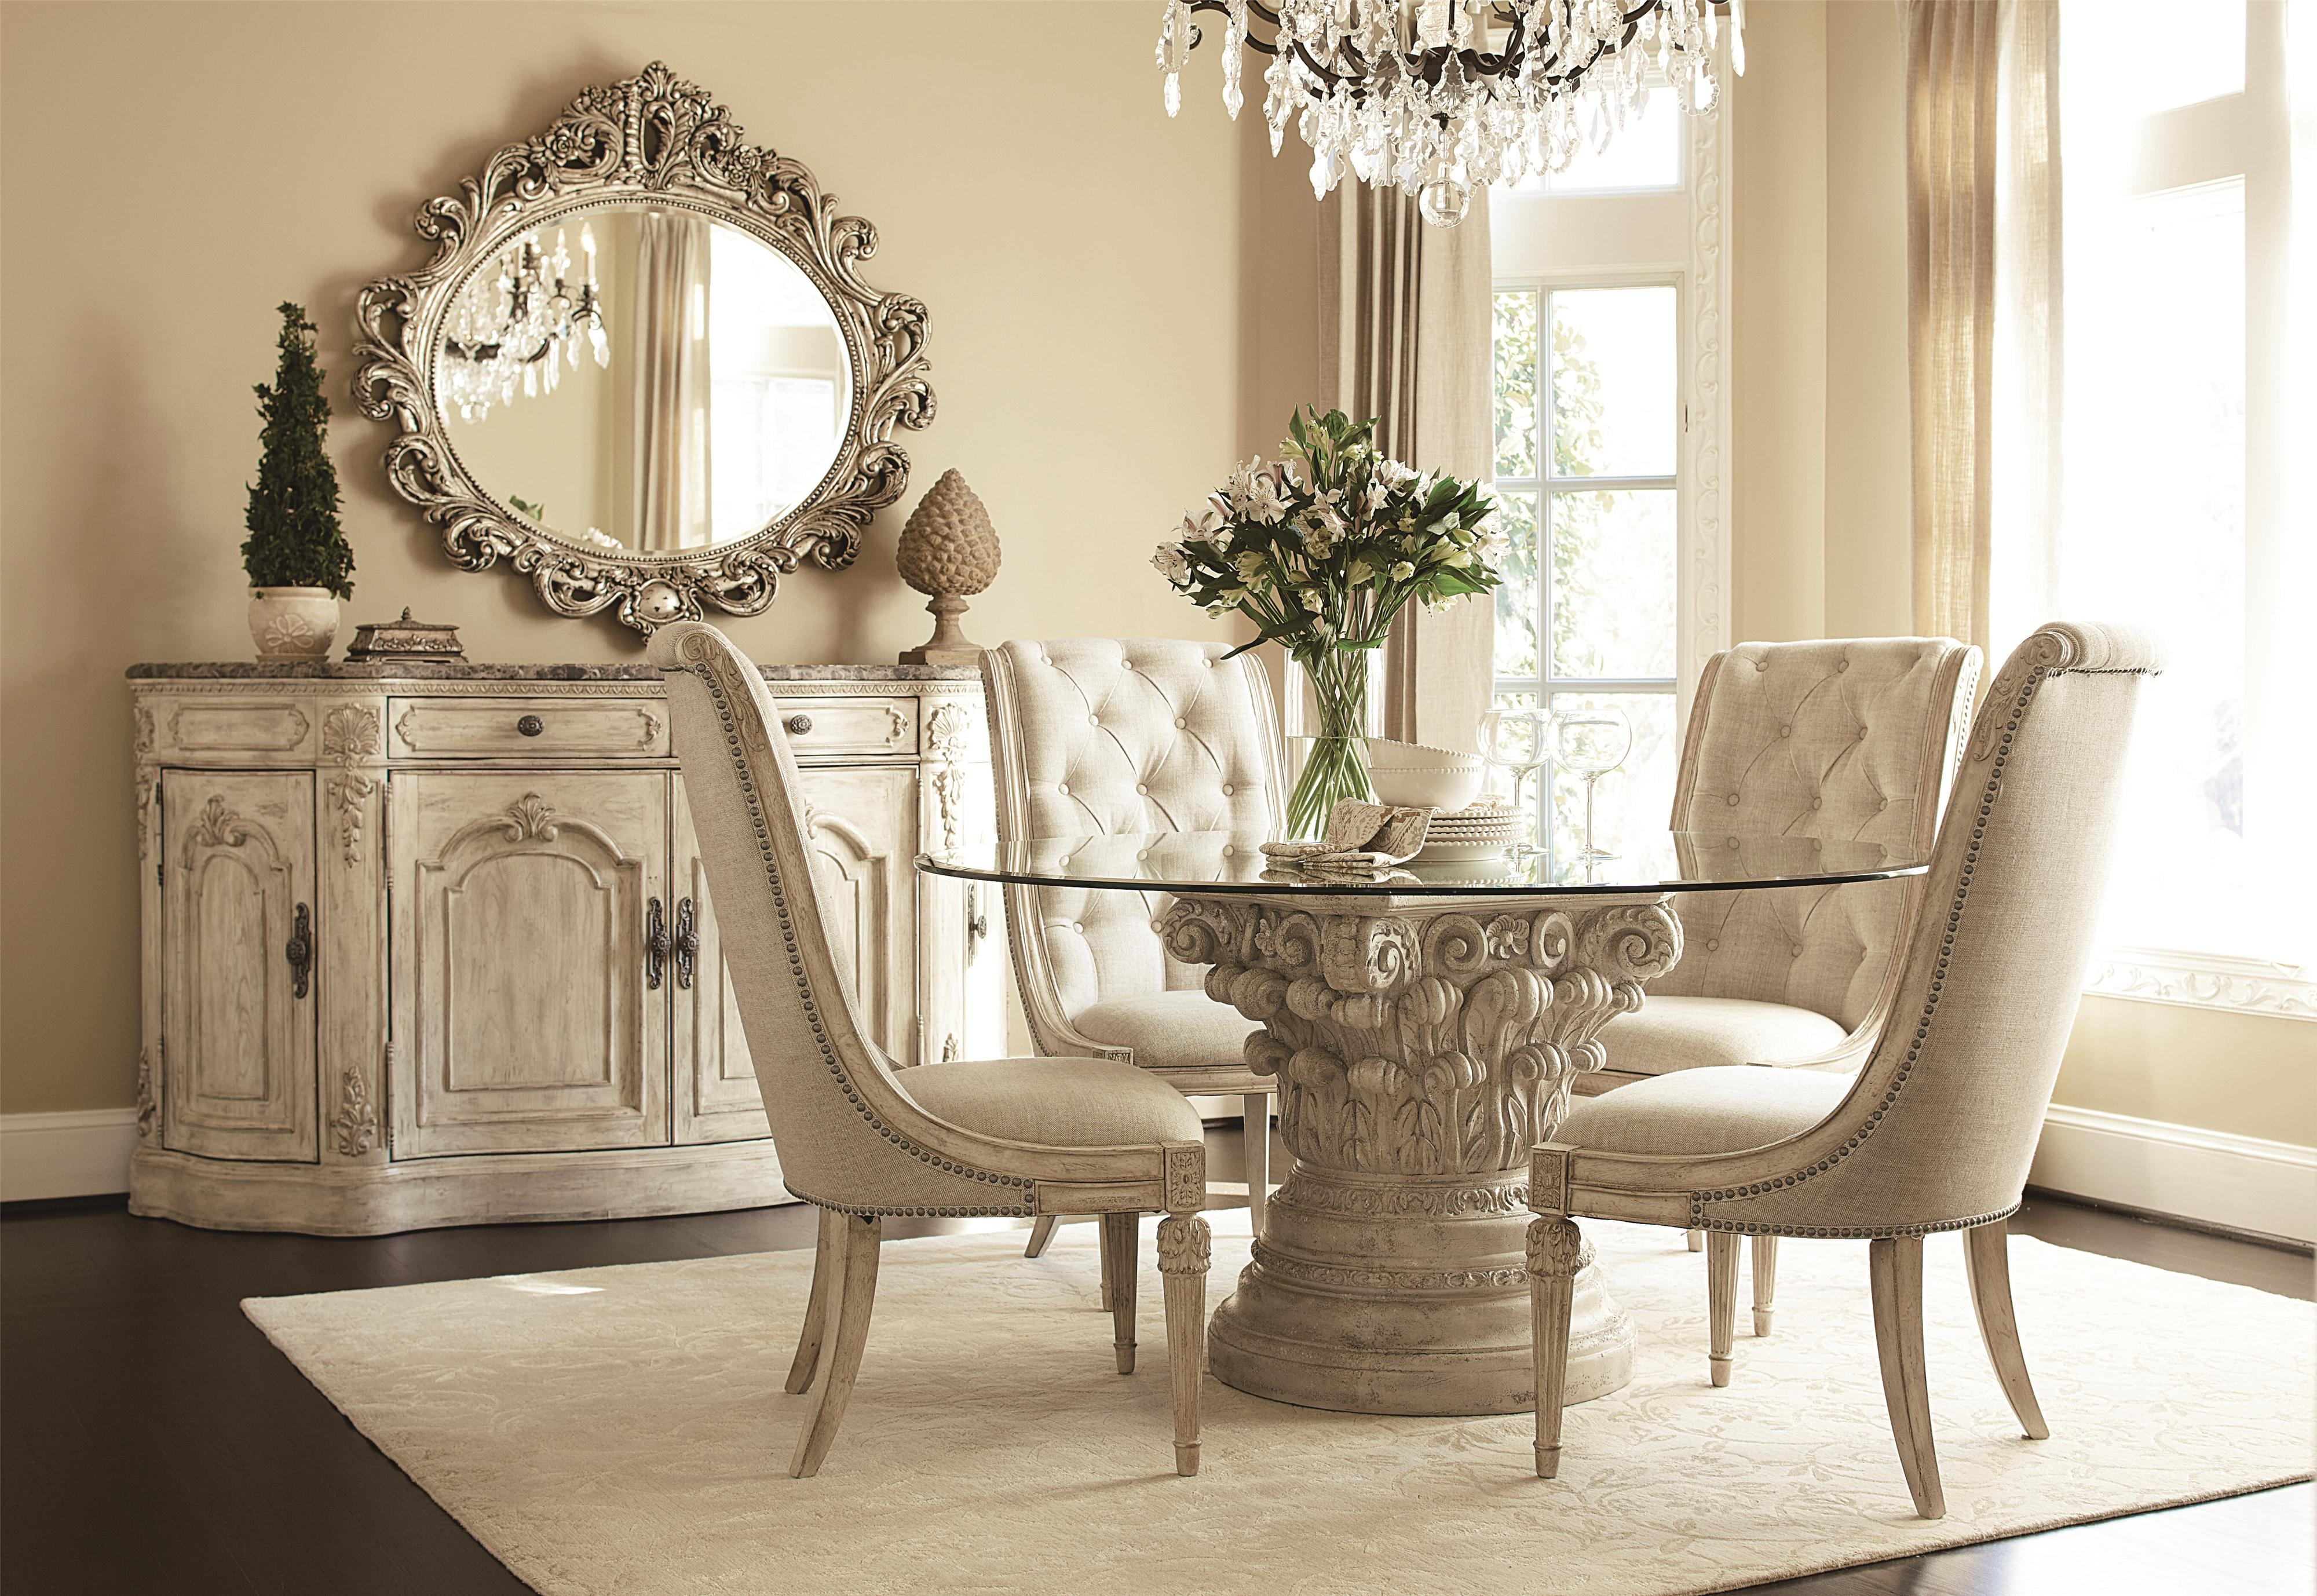 Luxury White Dining Room With Pedestal Table Base For Gl Top Armless Chairs Rustic Cabinet Decorative